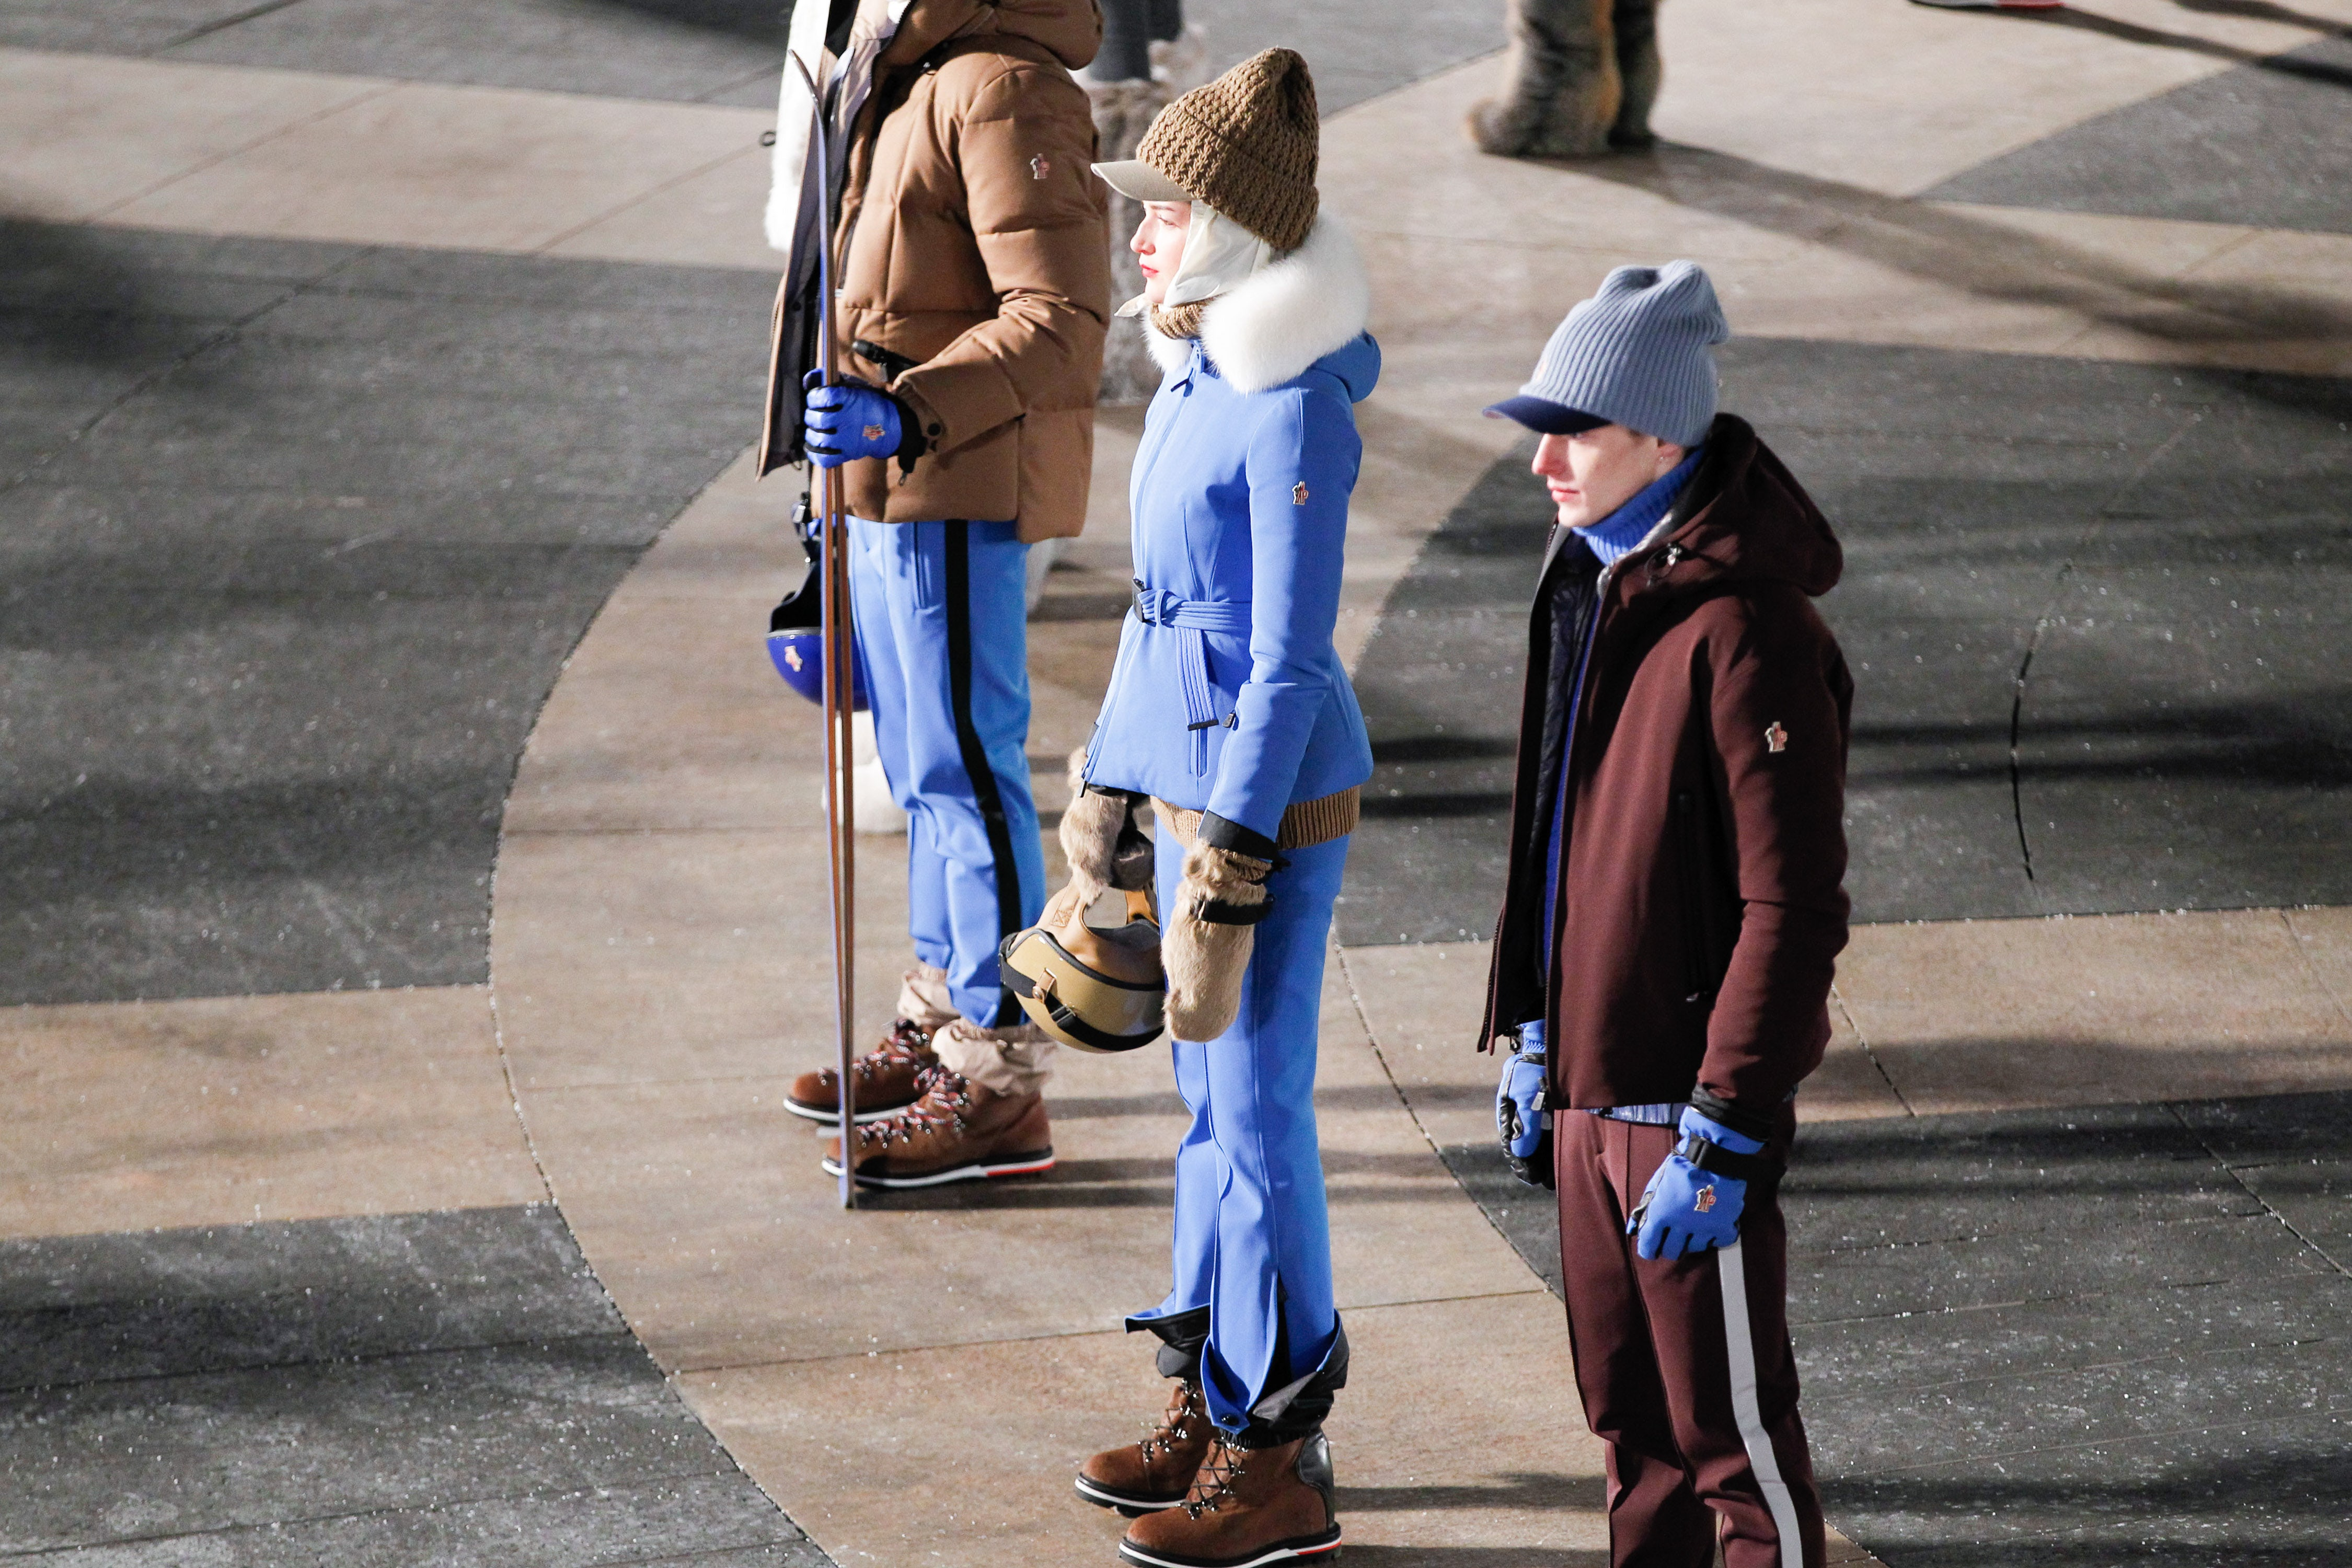 Moncler to Open Milan Fashion Week, Combine Men's and Women's Shows